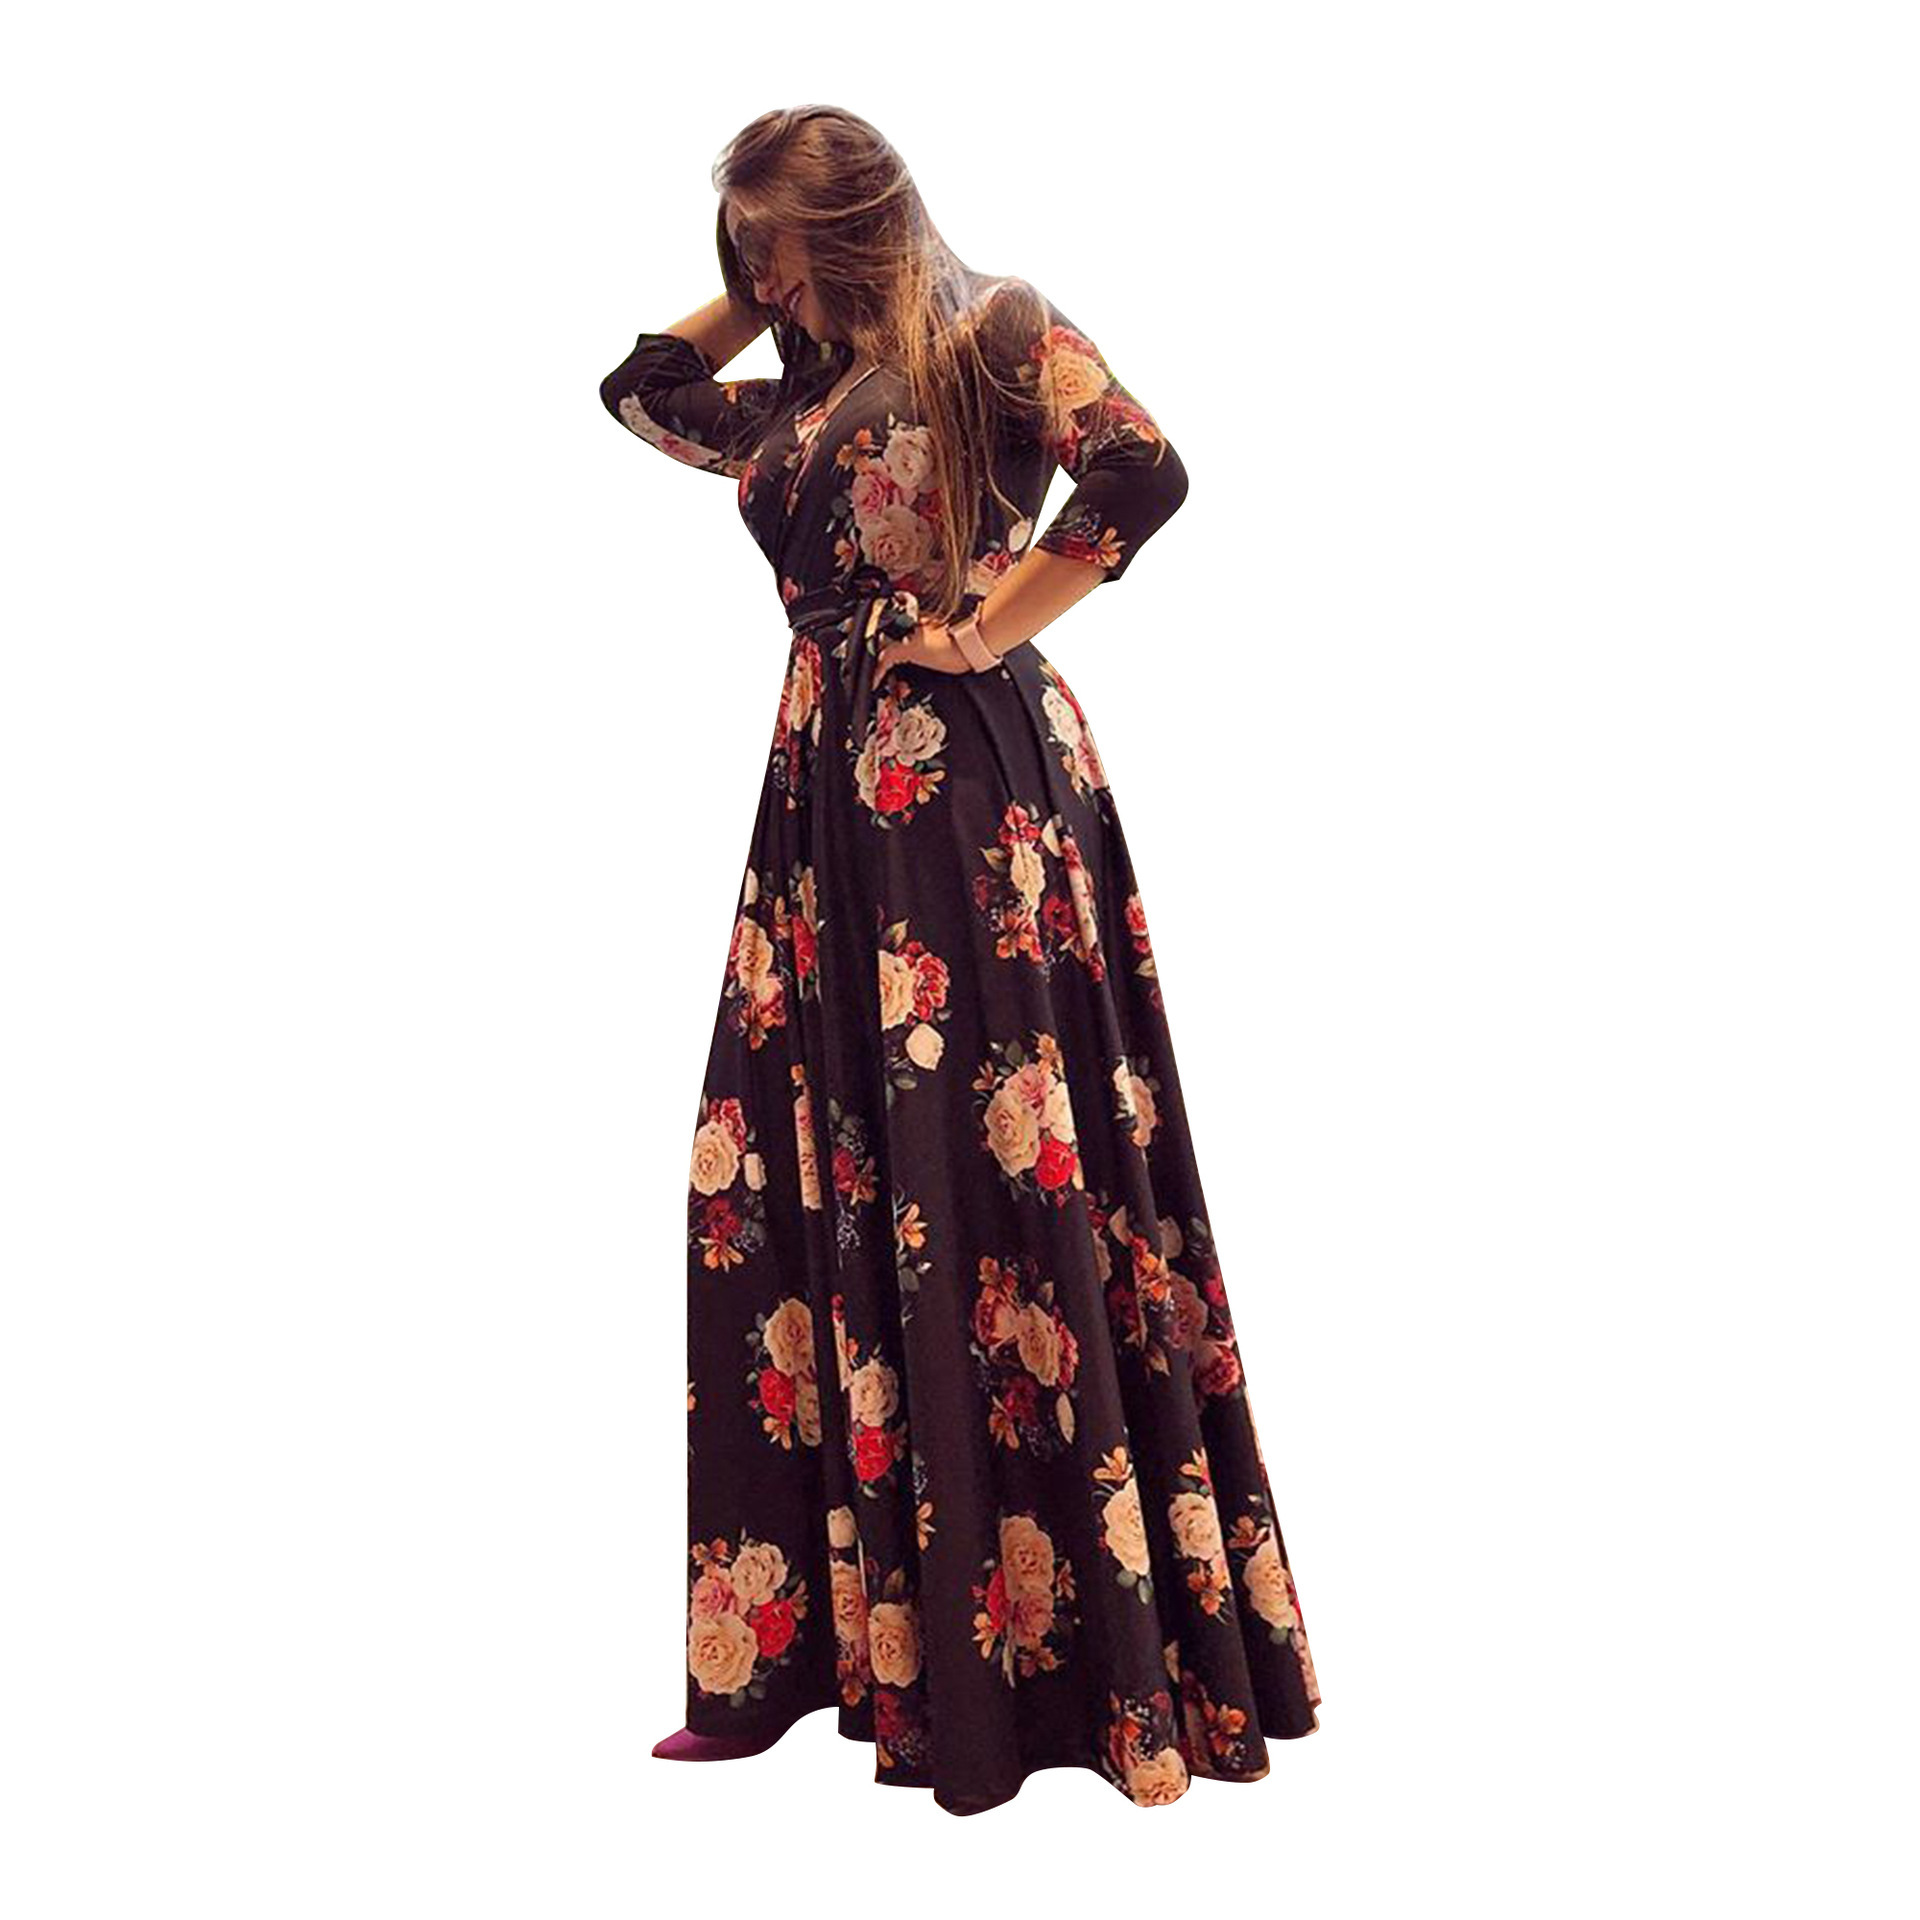 H759dc84900e24b50a7bc48f2e03a14ea3 - Oufisun Spring Sexy Deep V Neck Women's Dress Bohemia Tunic Maxi Dresses Elegant Vintage Flowers Print Dress Vestidos Plus Size